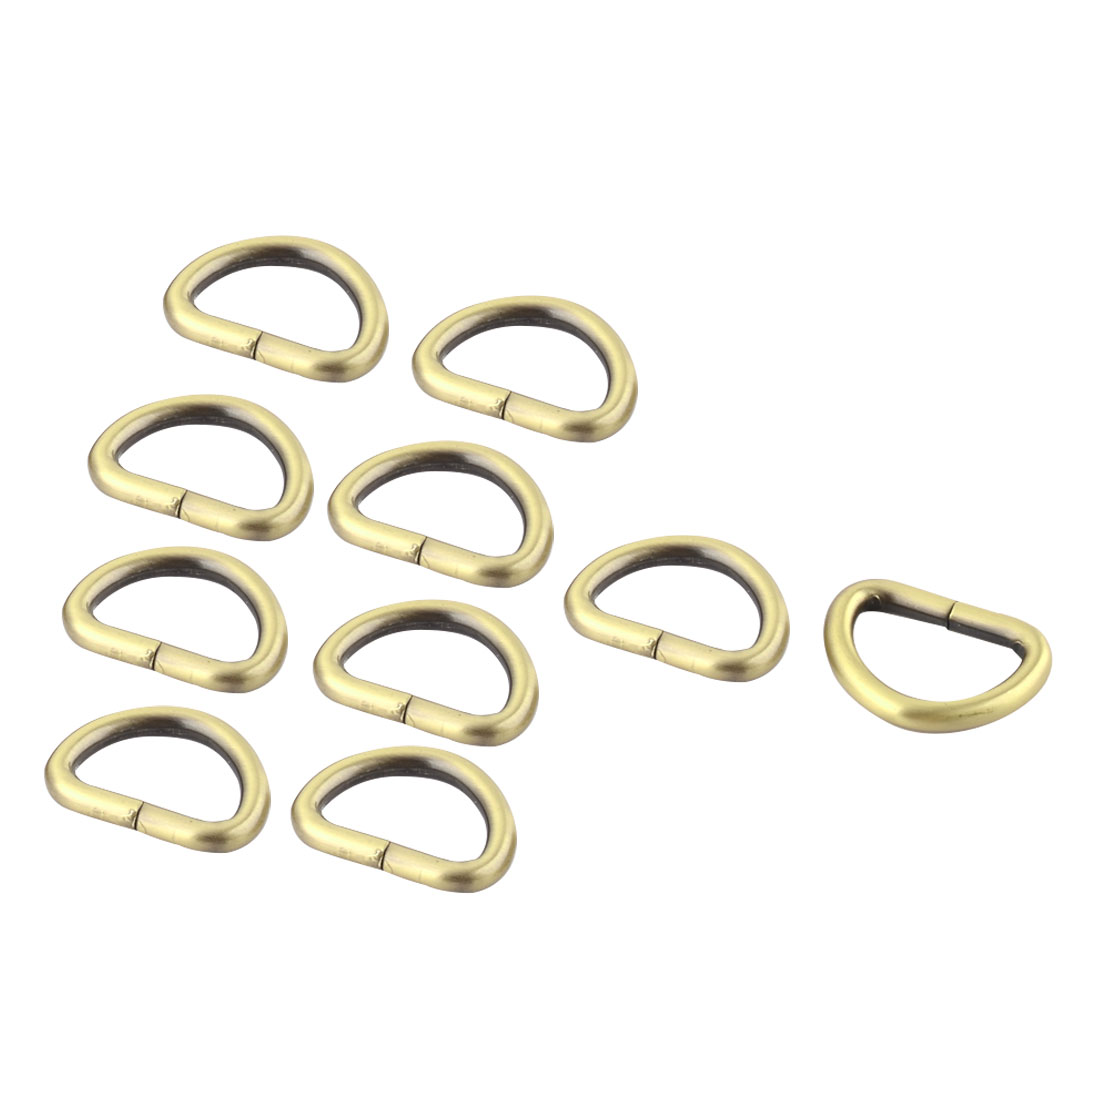 "Luggage Metal D Shaped Ring Buckle 1"" x 0.63"" Inside Size Bronze Tone 10 Pcs"